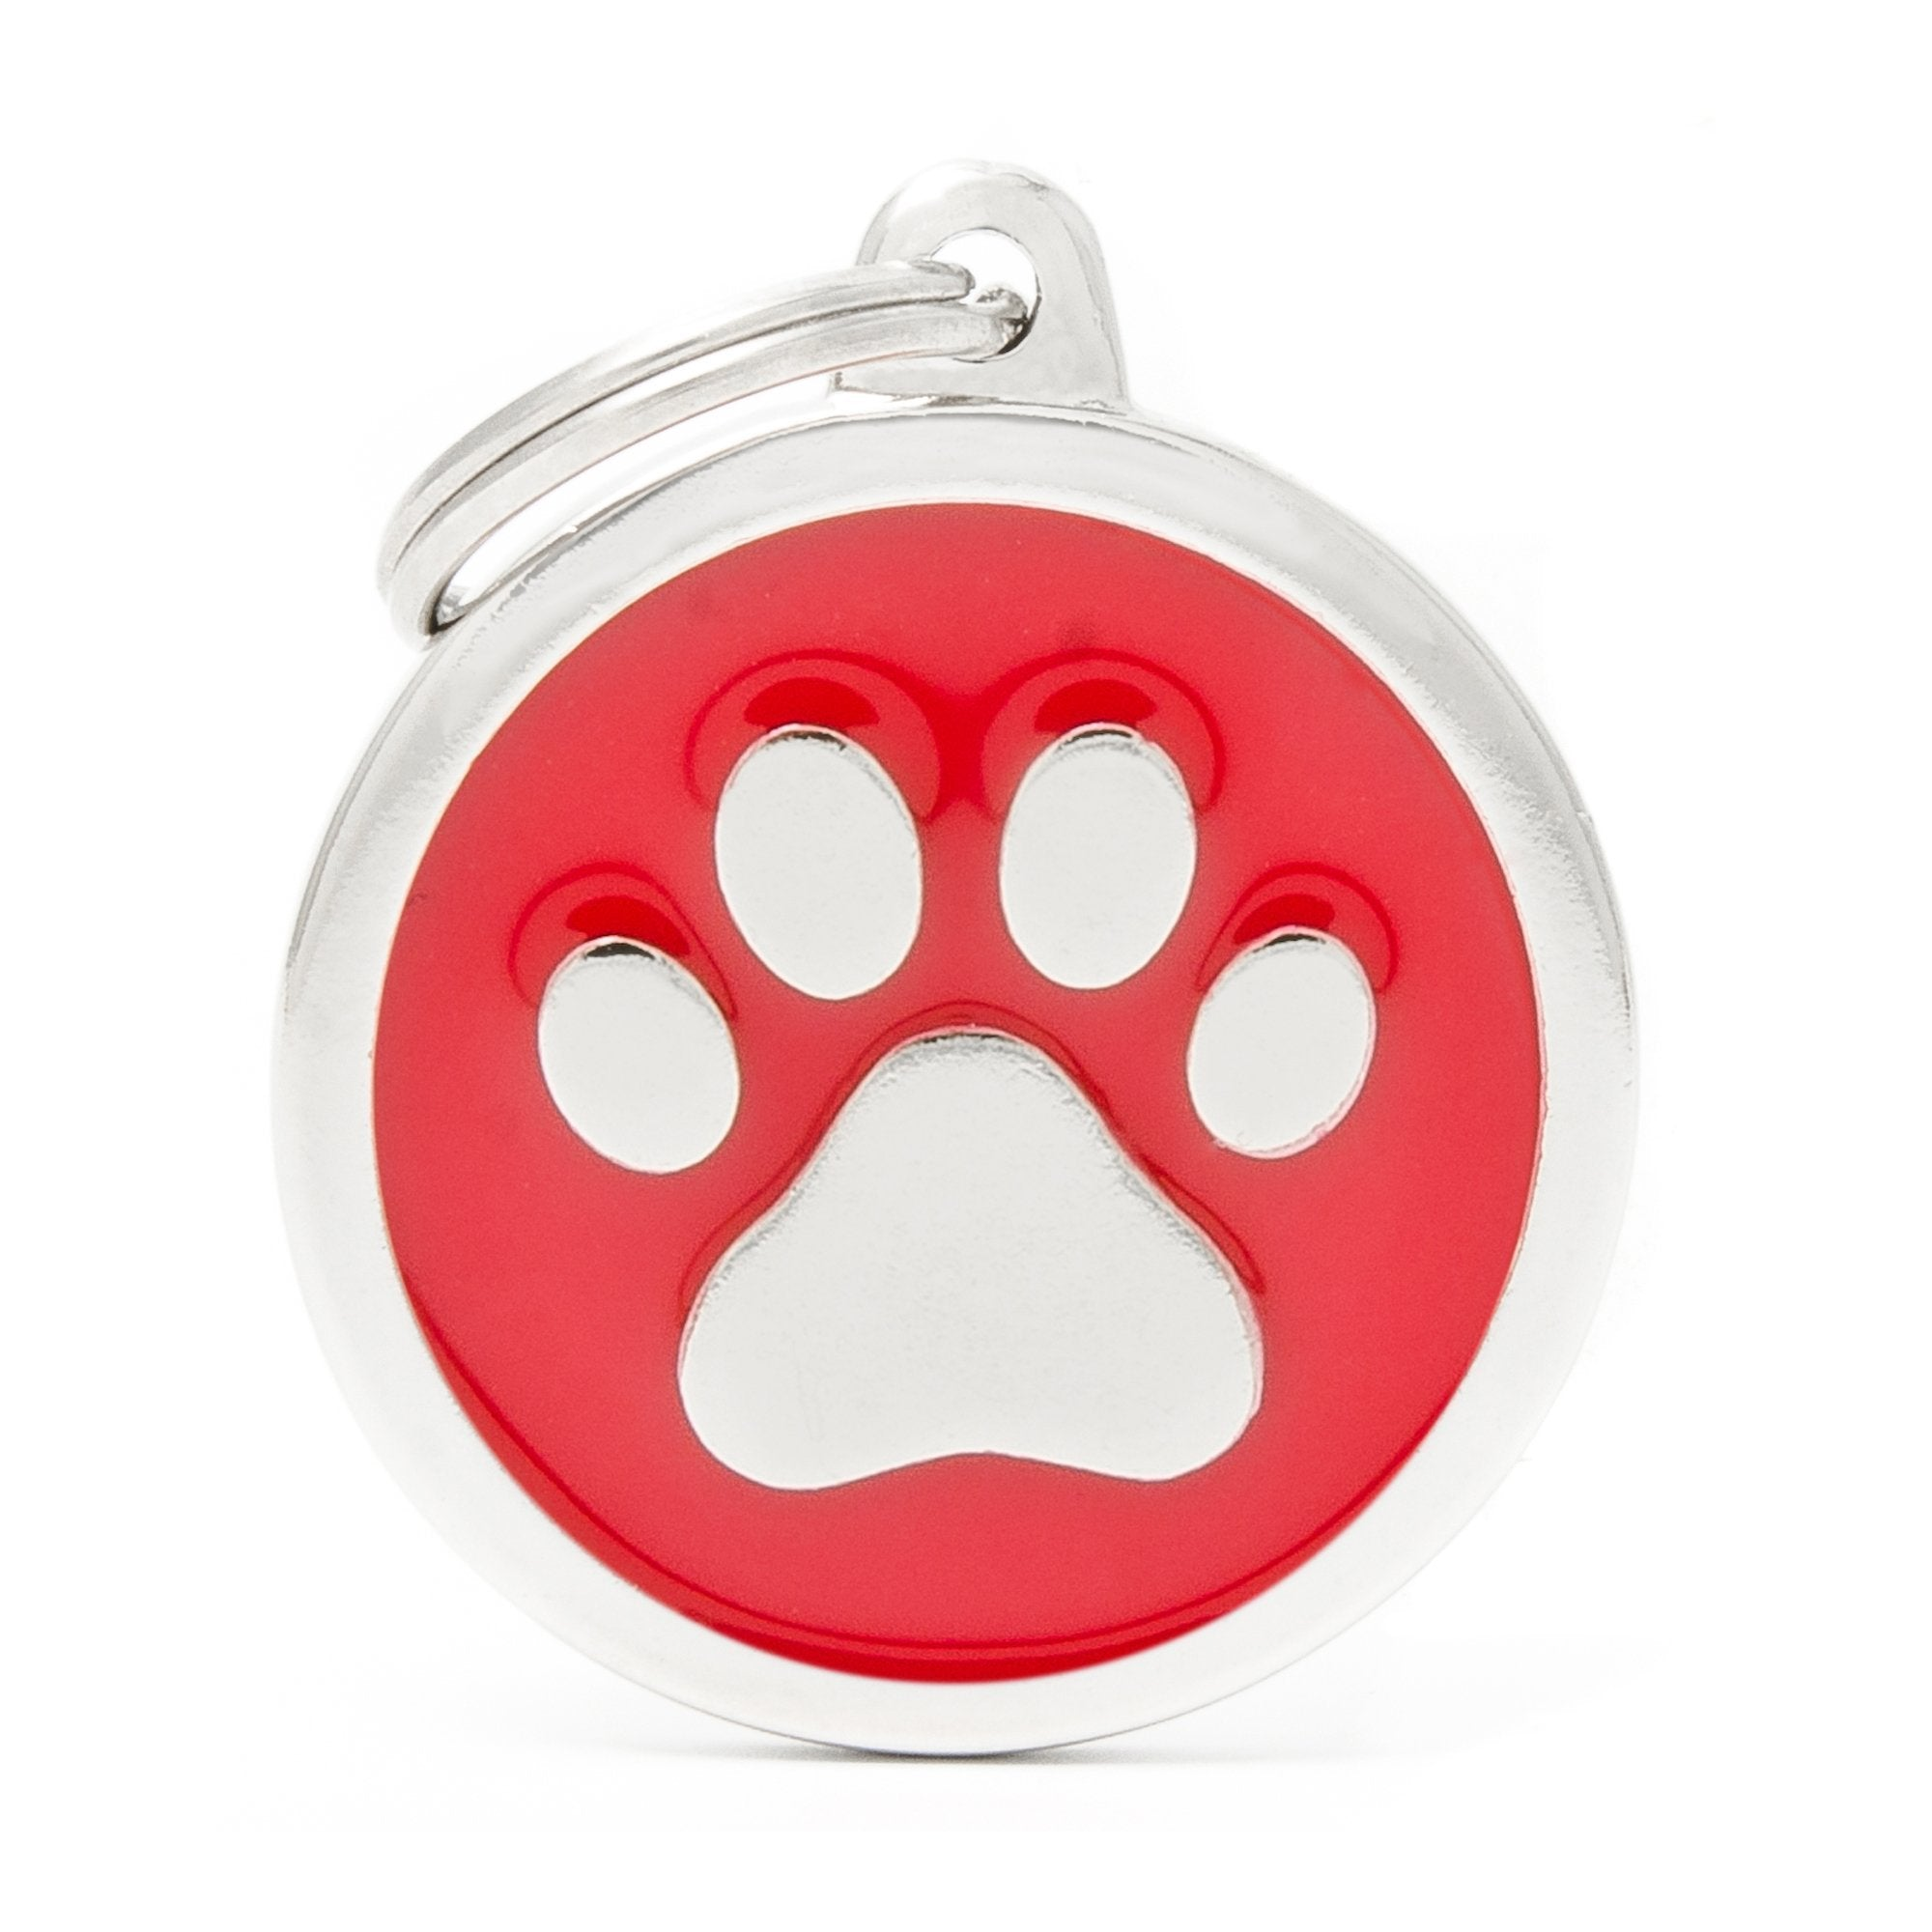 My Family Classic Red Paw Pet I.D. Tag